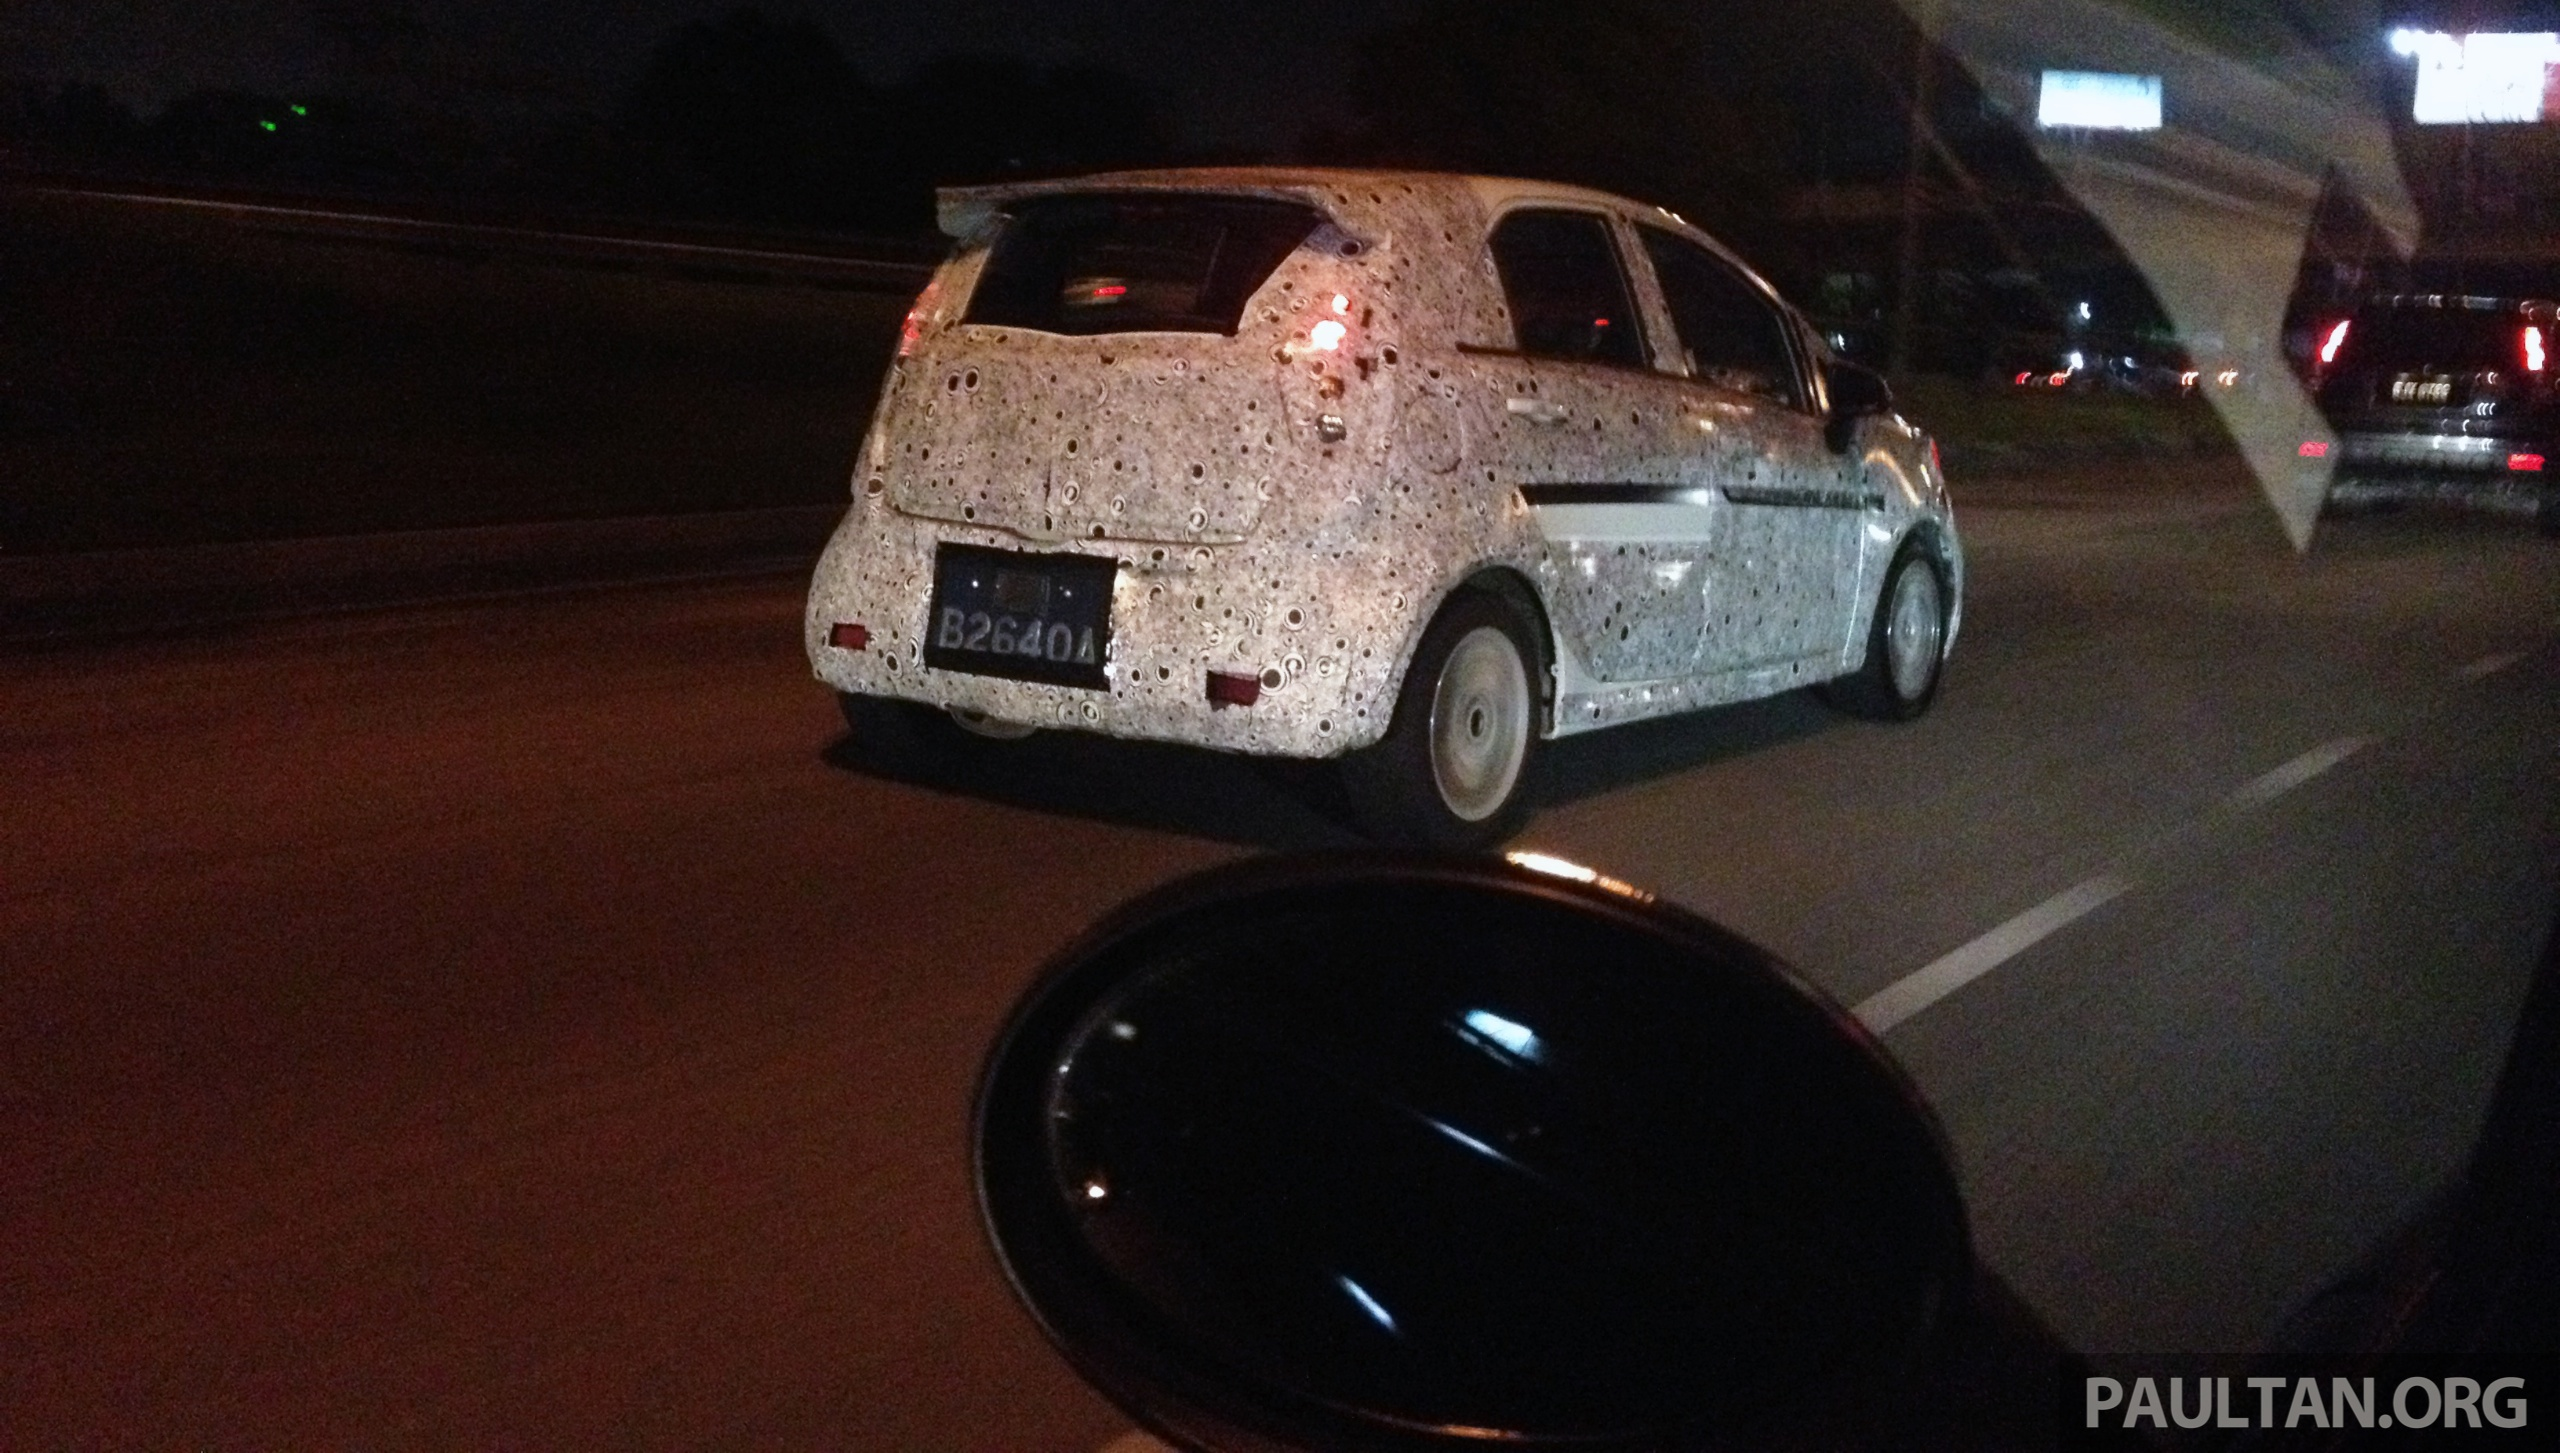 Proton Global Small Car P2-30A spied on Fed Highway